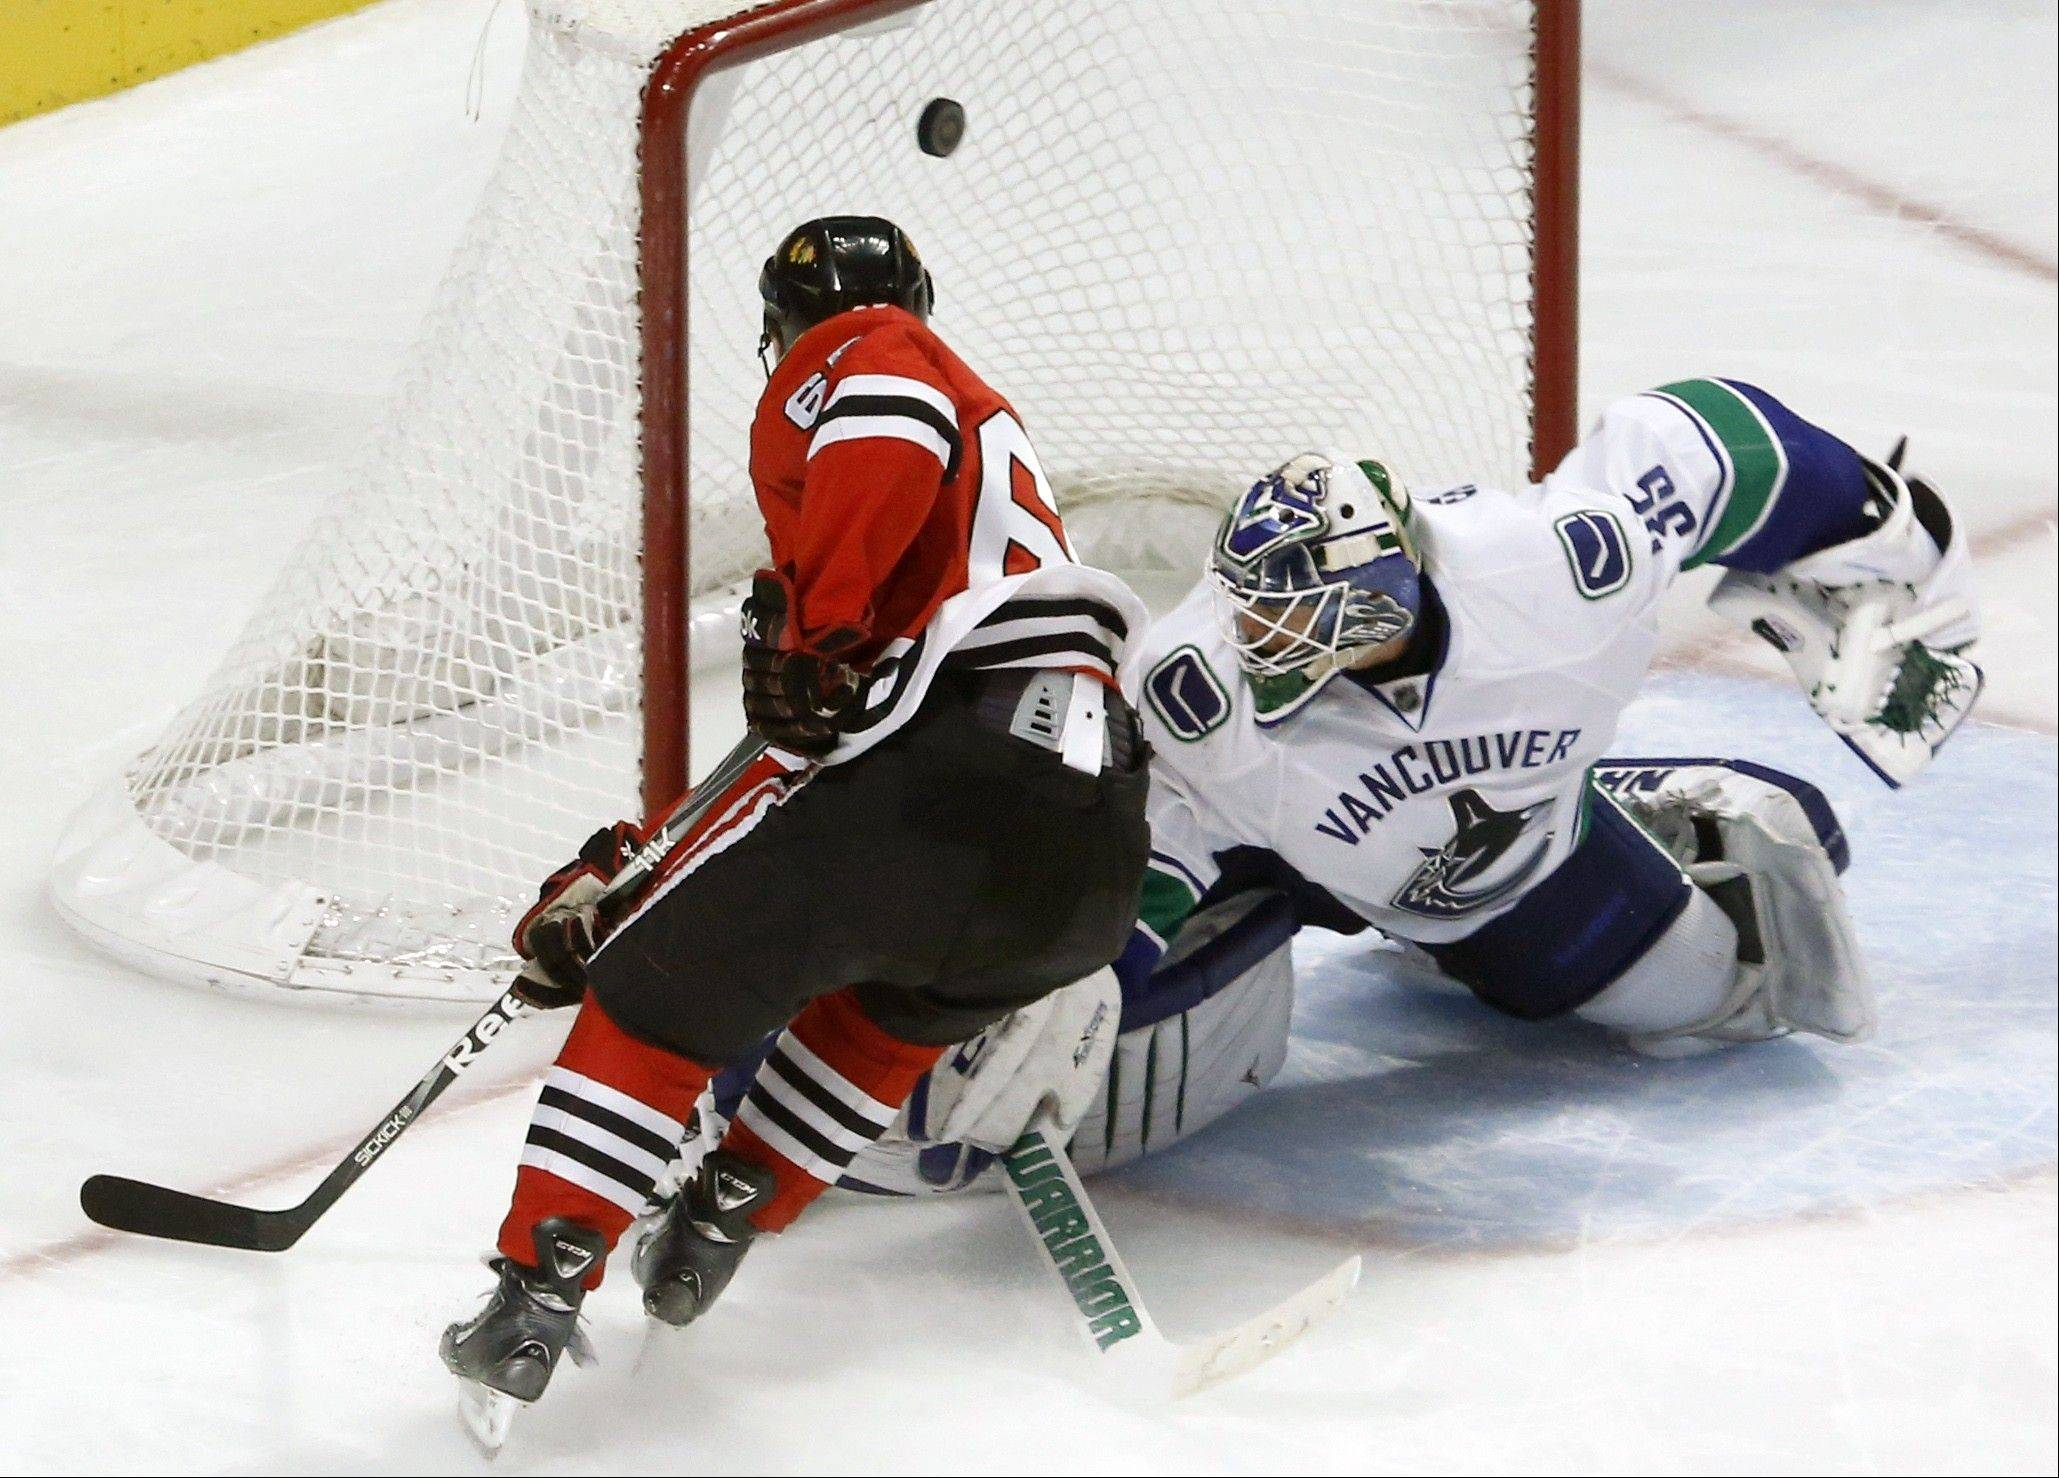 Chicago Blackhawks center Andrew Shaw scores against Vancouver Canucks goalie Cory Schneider during the shootout.